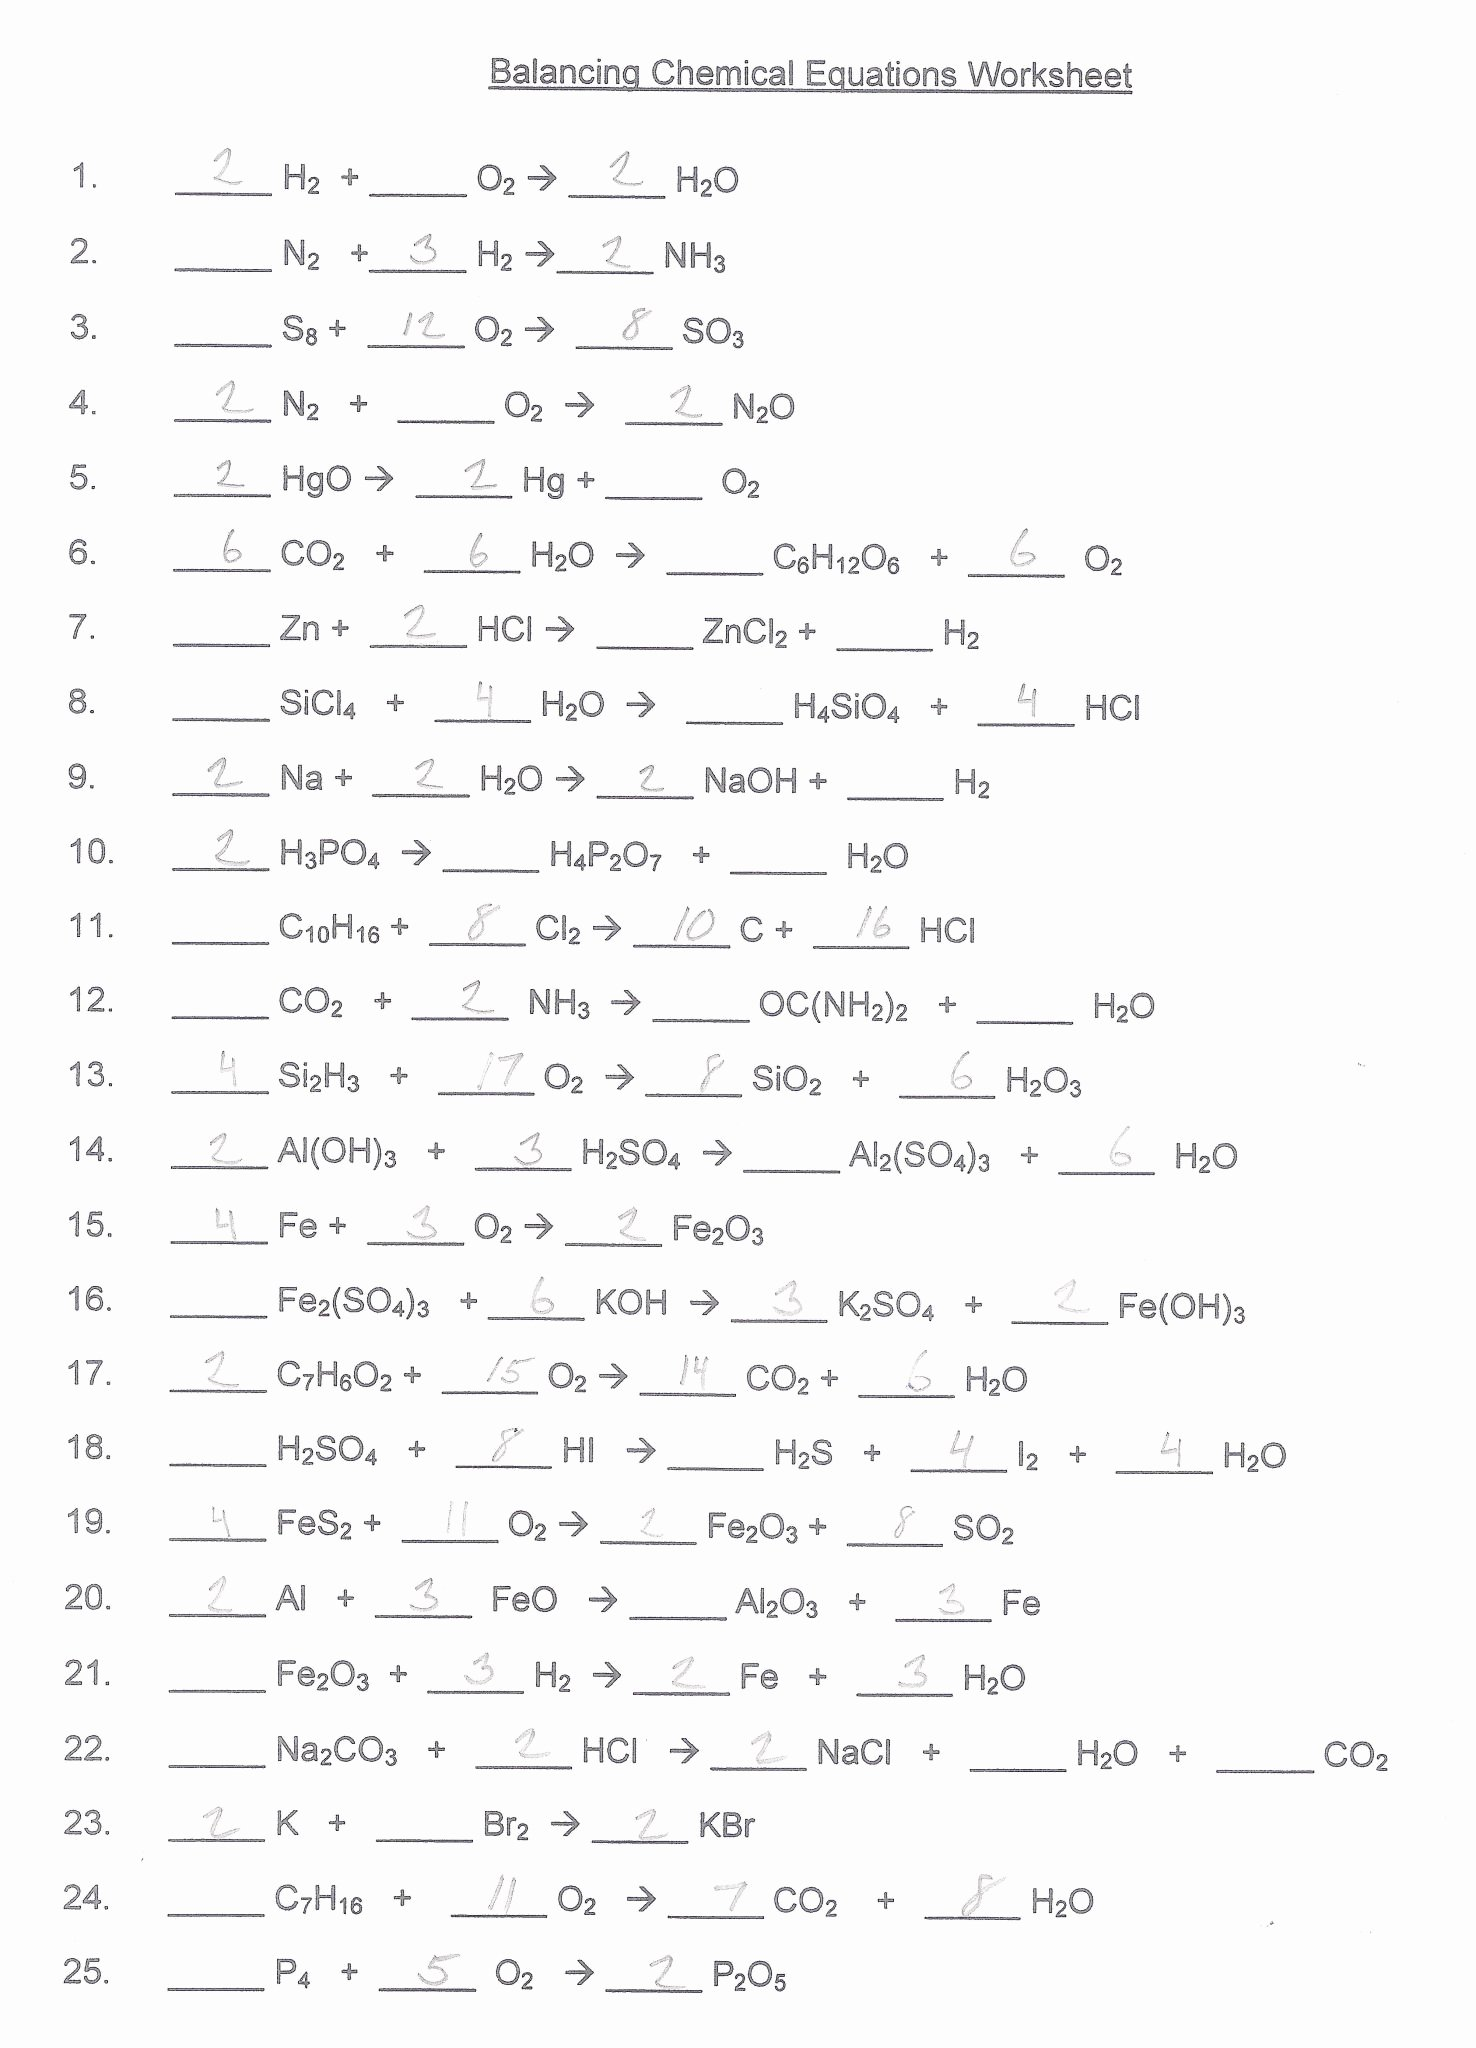 Specific Heat Worksheet Answers Lovely Calculating